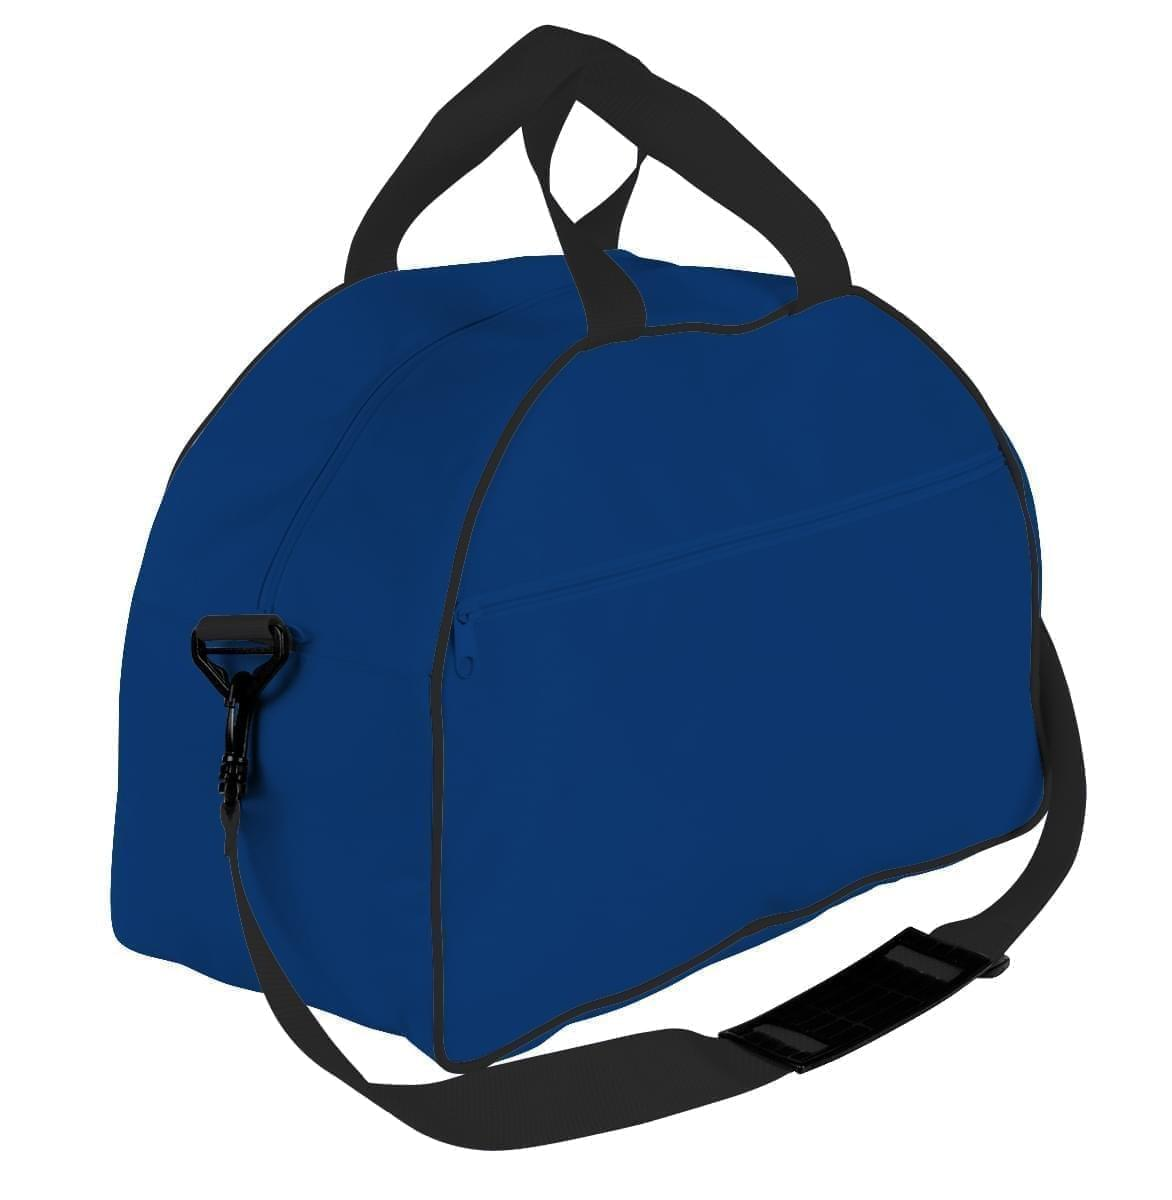 USA Made Nylon Poly Weekender Duffel Bags, Royal Blue-Black, 6PKV32JA0R